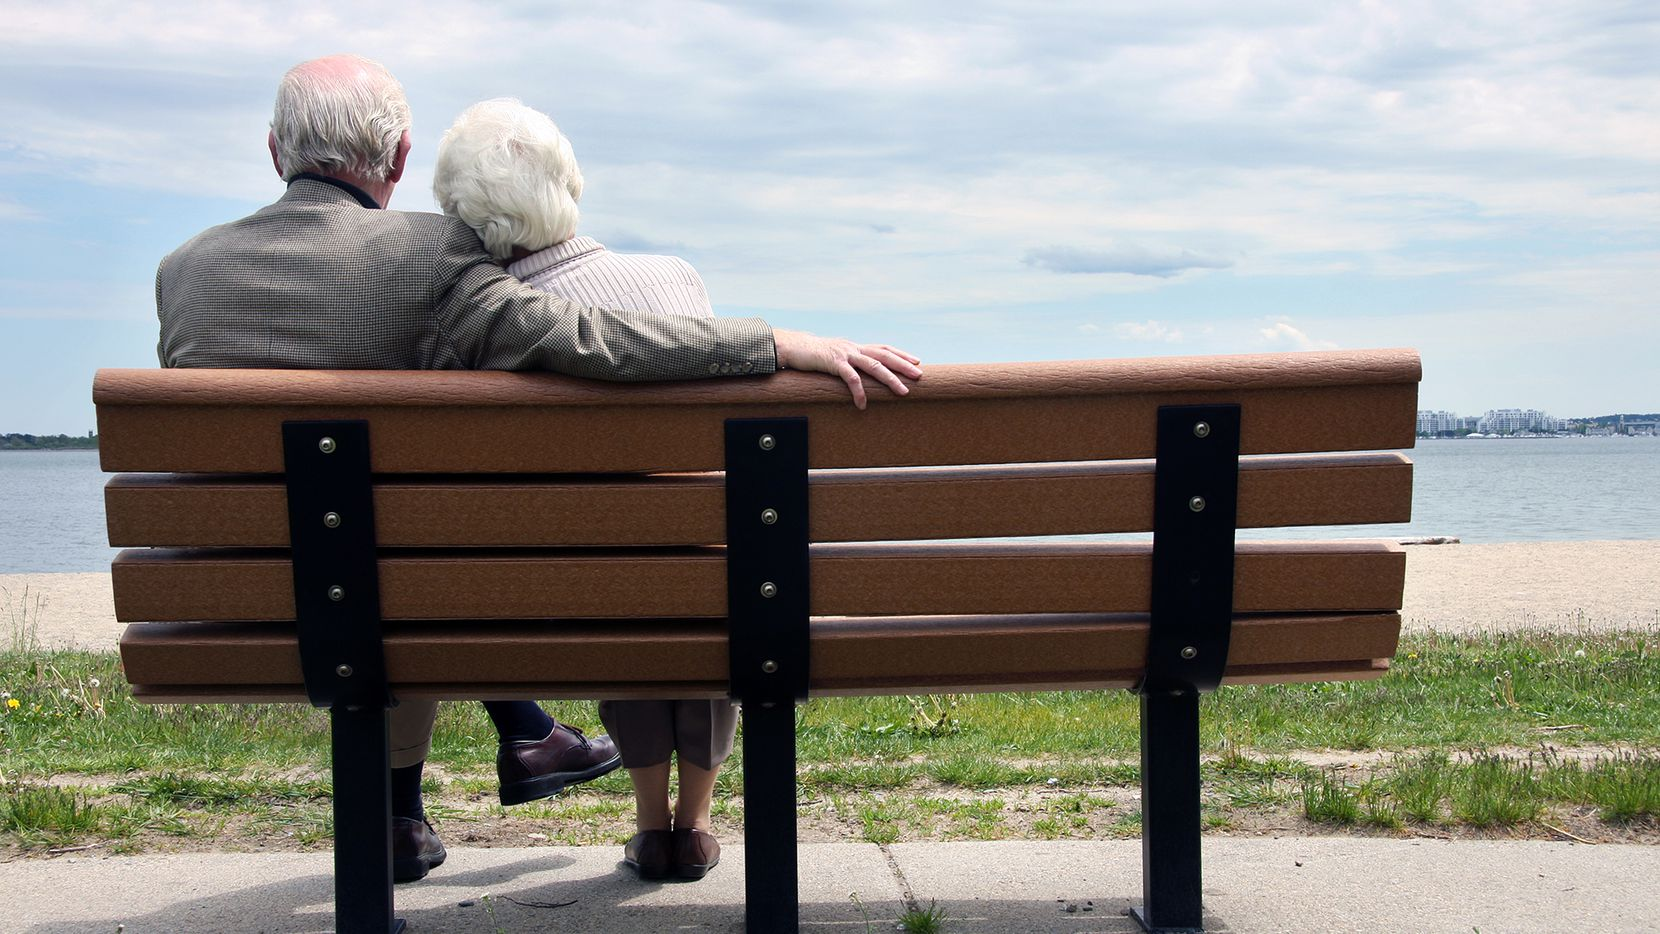 Unless they are due higher benefits on their own Social Security accounts, widows and widowers are due full benefits at their full retirement age or reduced benefits as early as age 60 if they are not working.